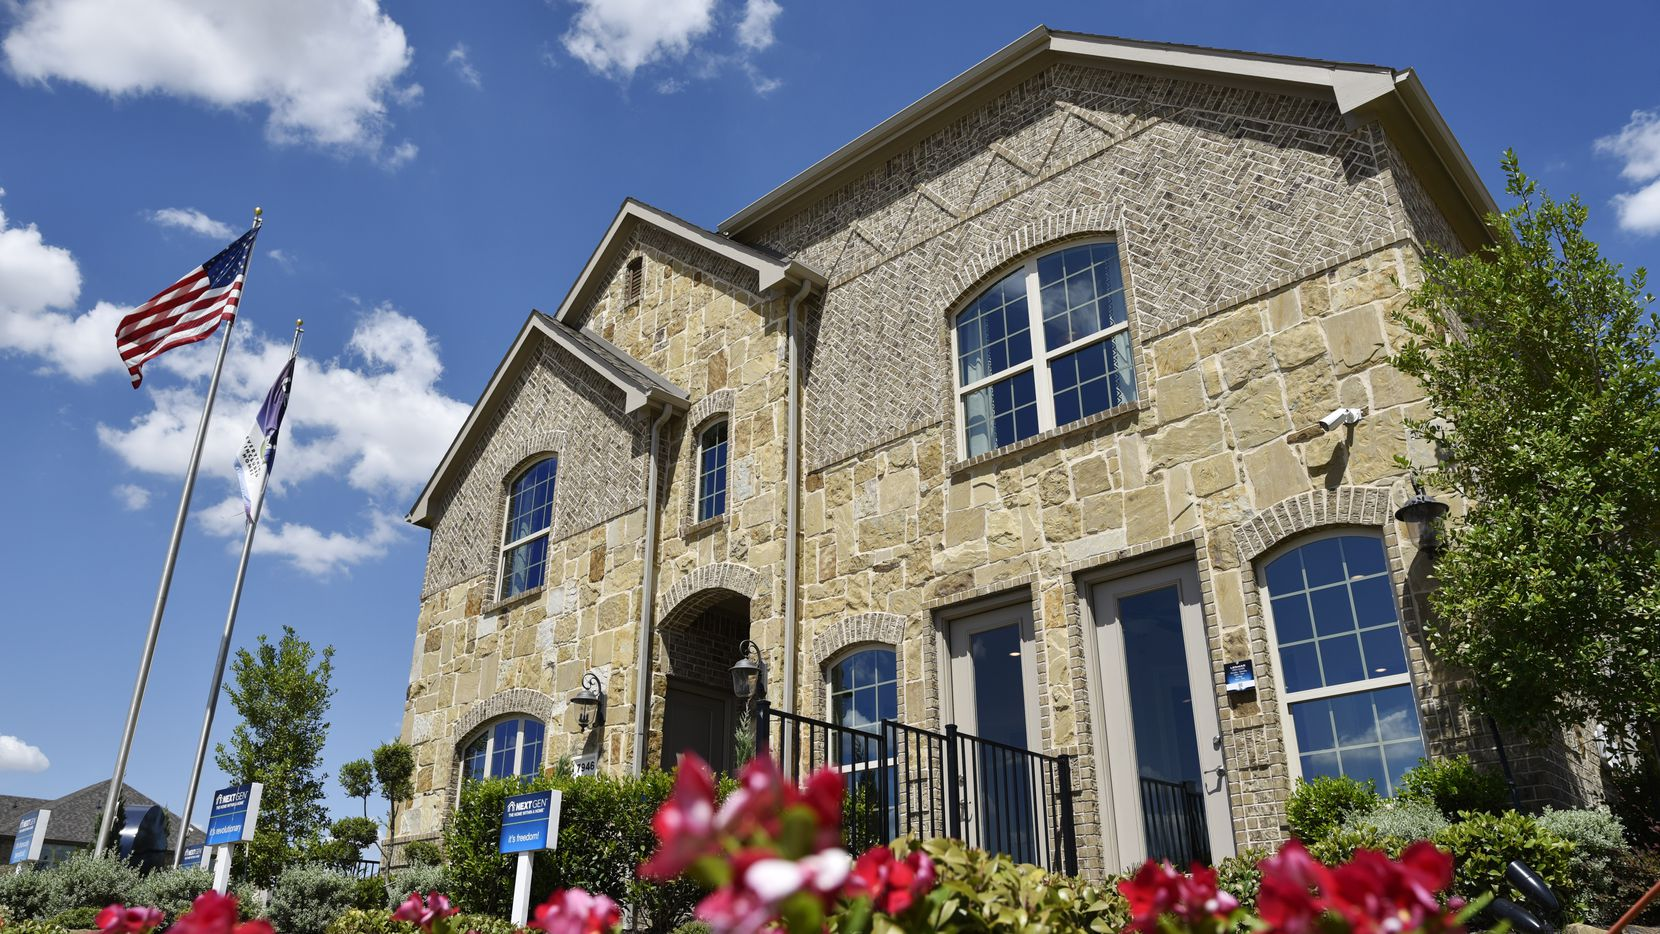 Lennar's   NextGen homes for sale in Far North Dallas have a separate living suite inside a traditional single-family house.